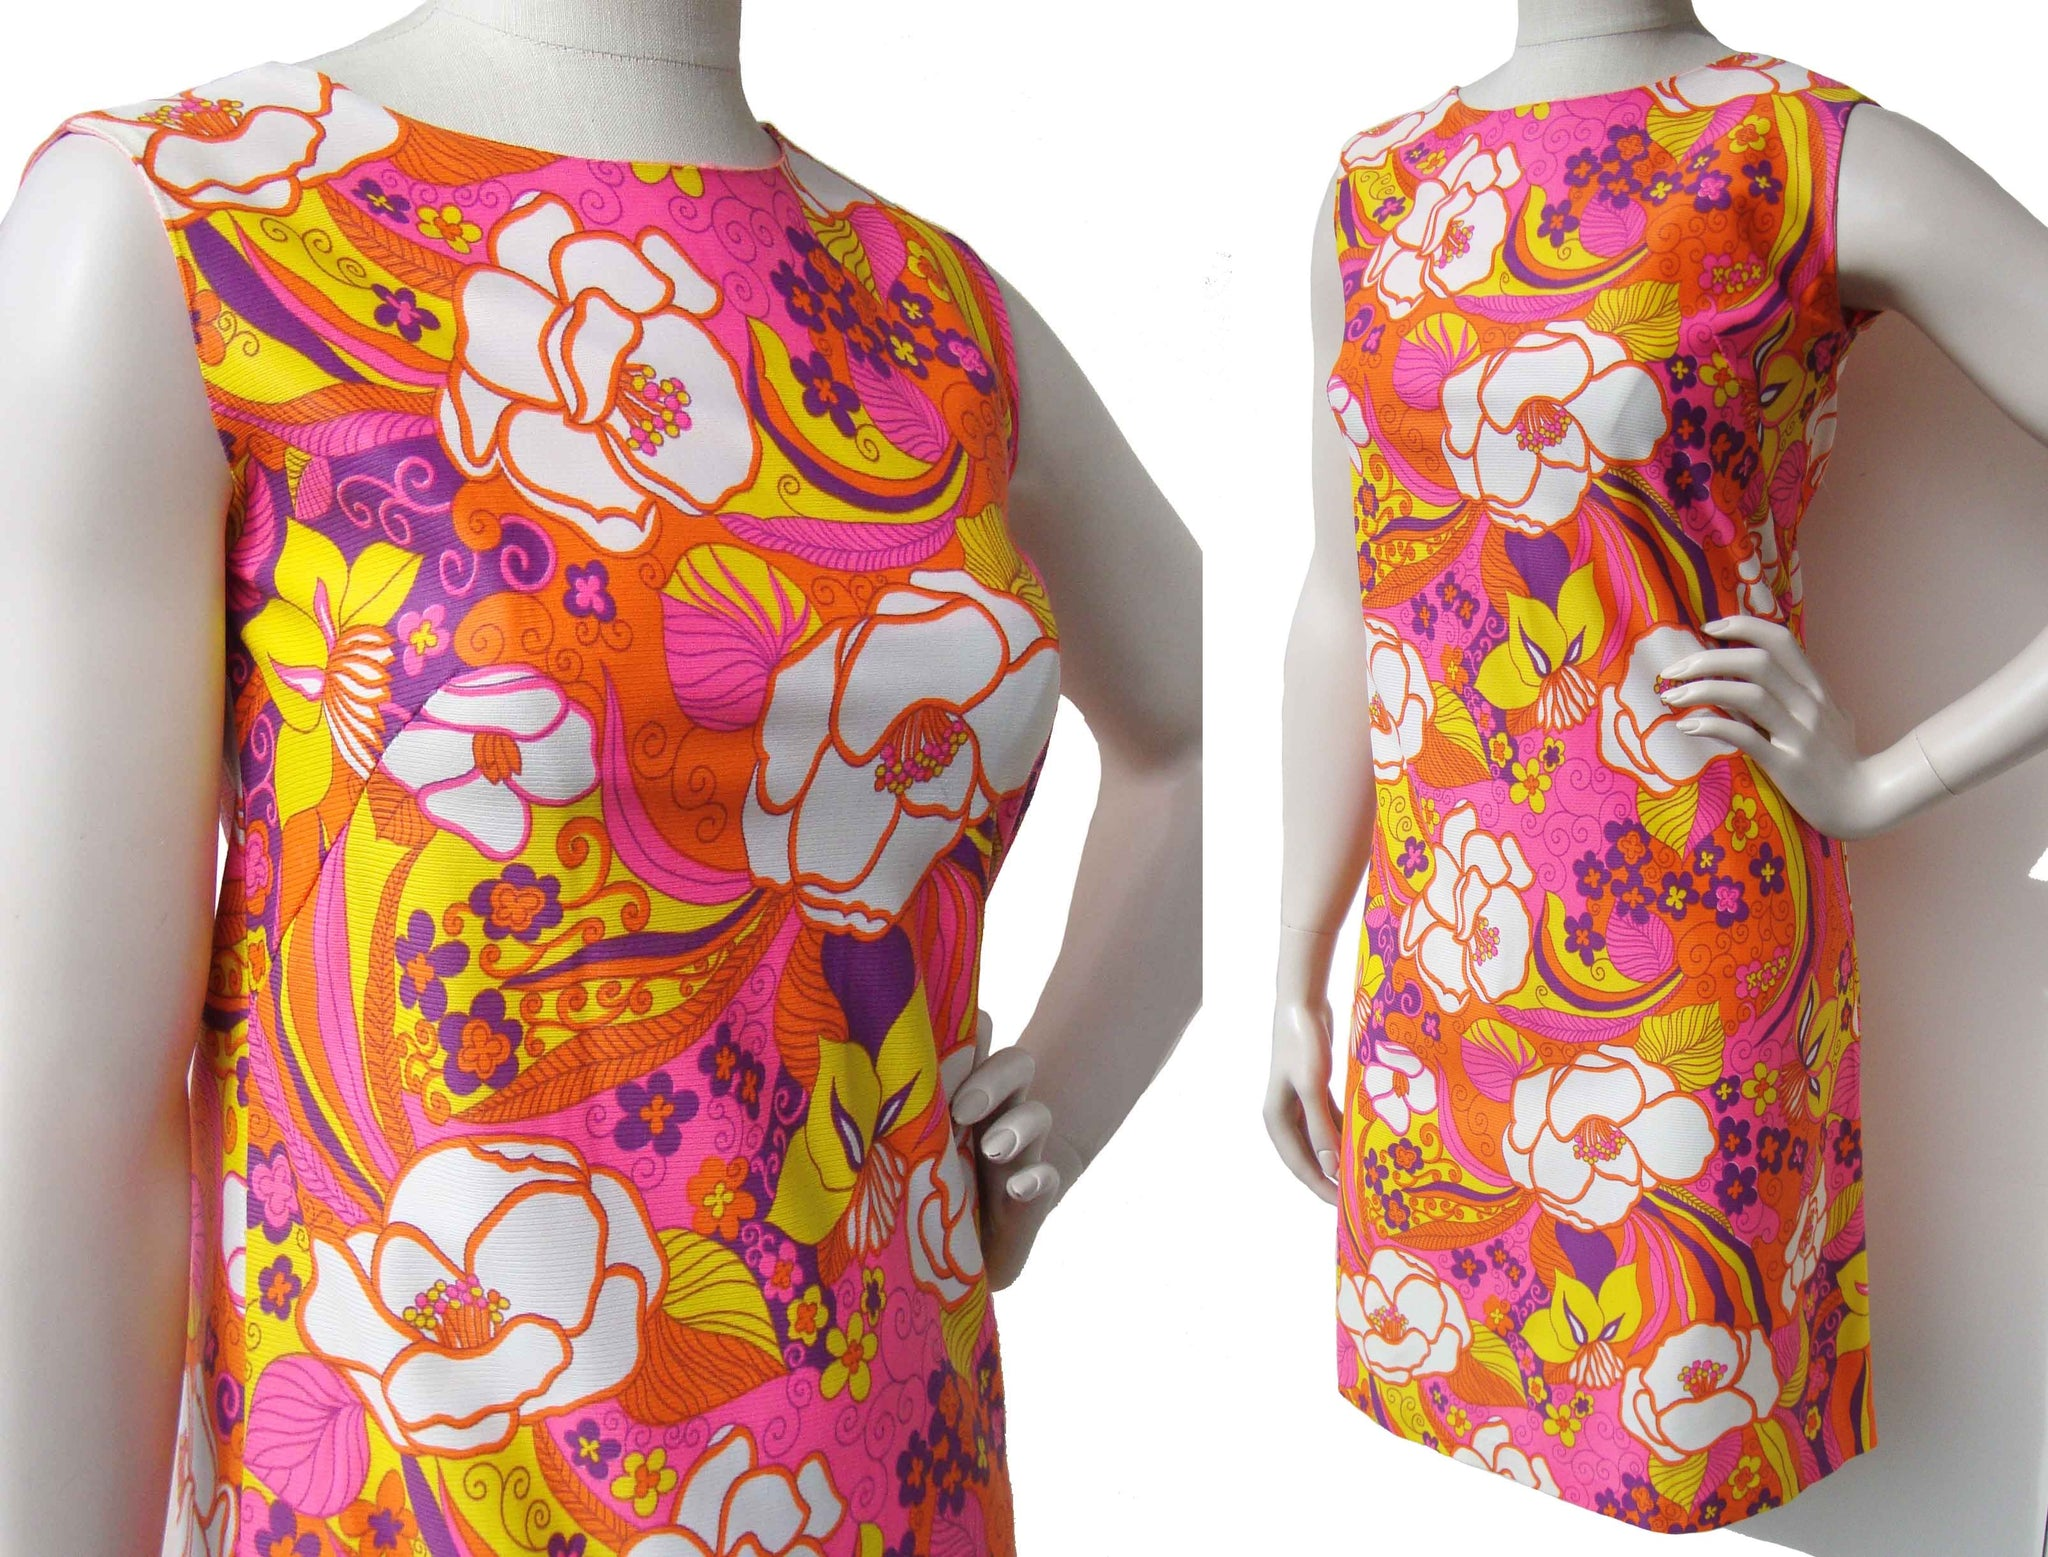 Vintage 60s Pink Dress Mod Floral Psychedelic Pop Art Mini S / M